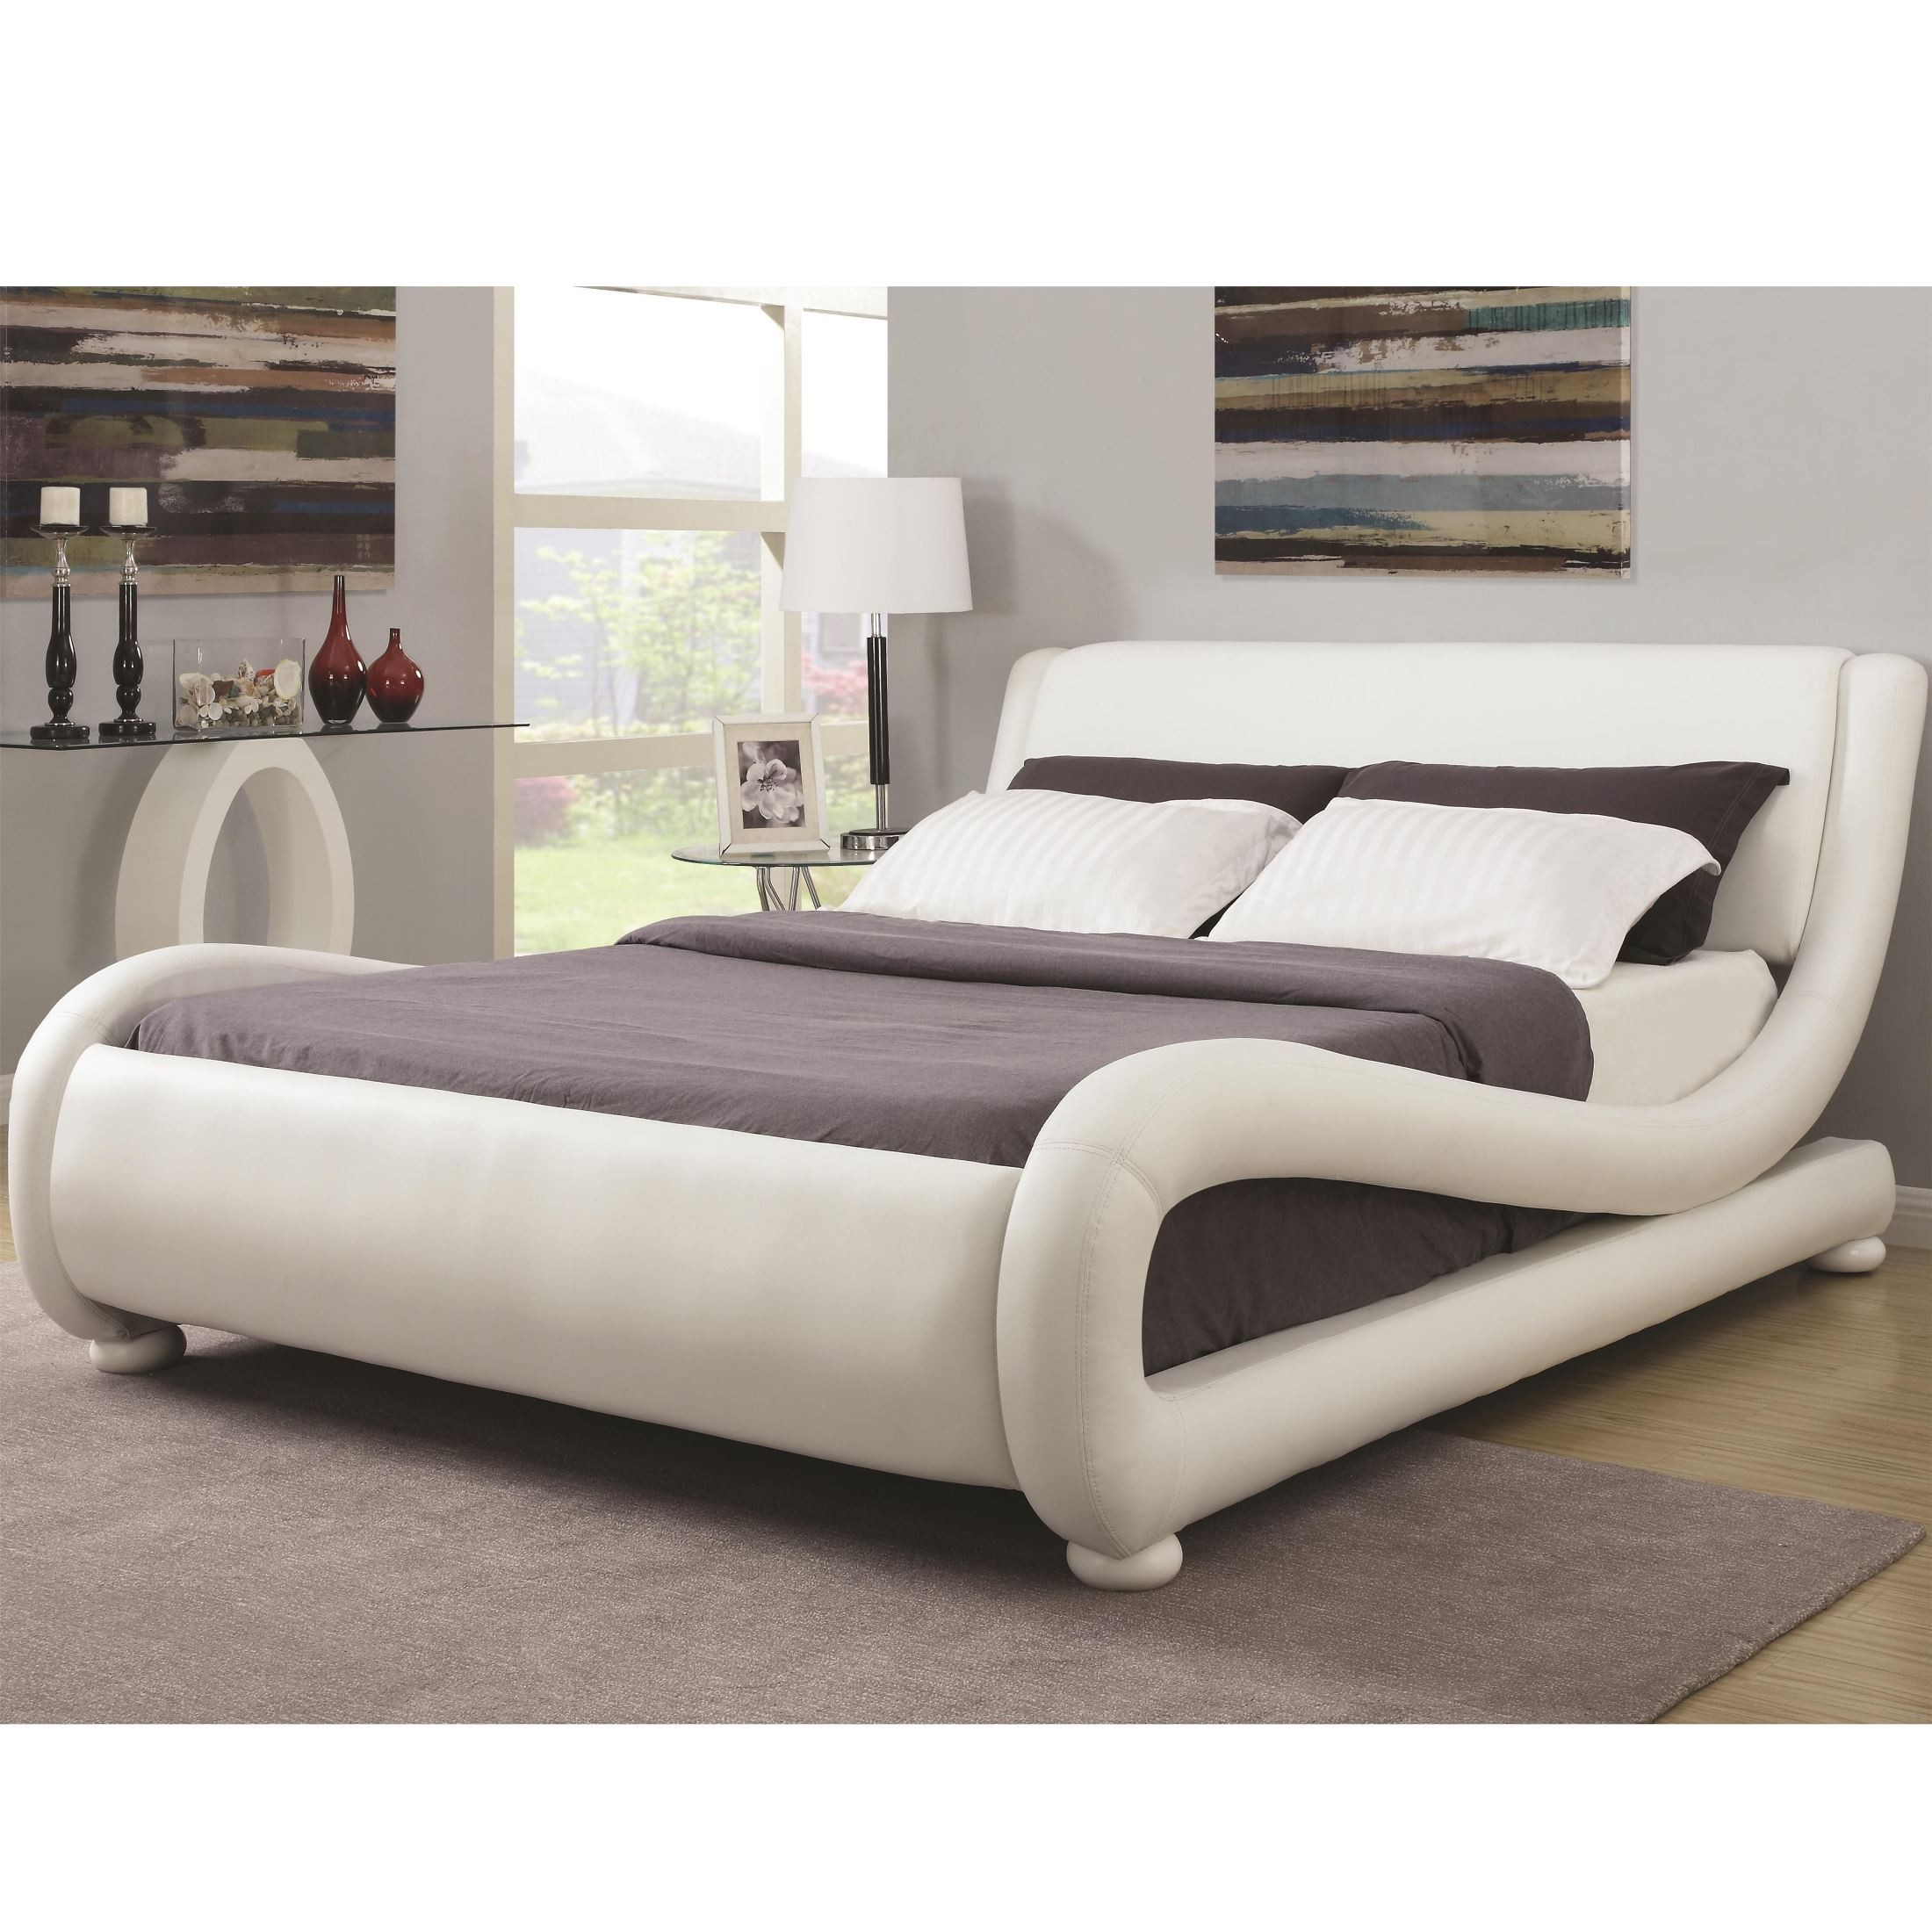 Coaster Upholstered King Bed